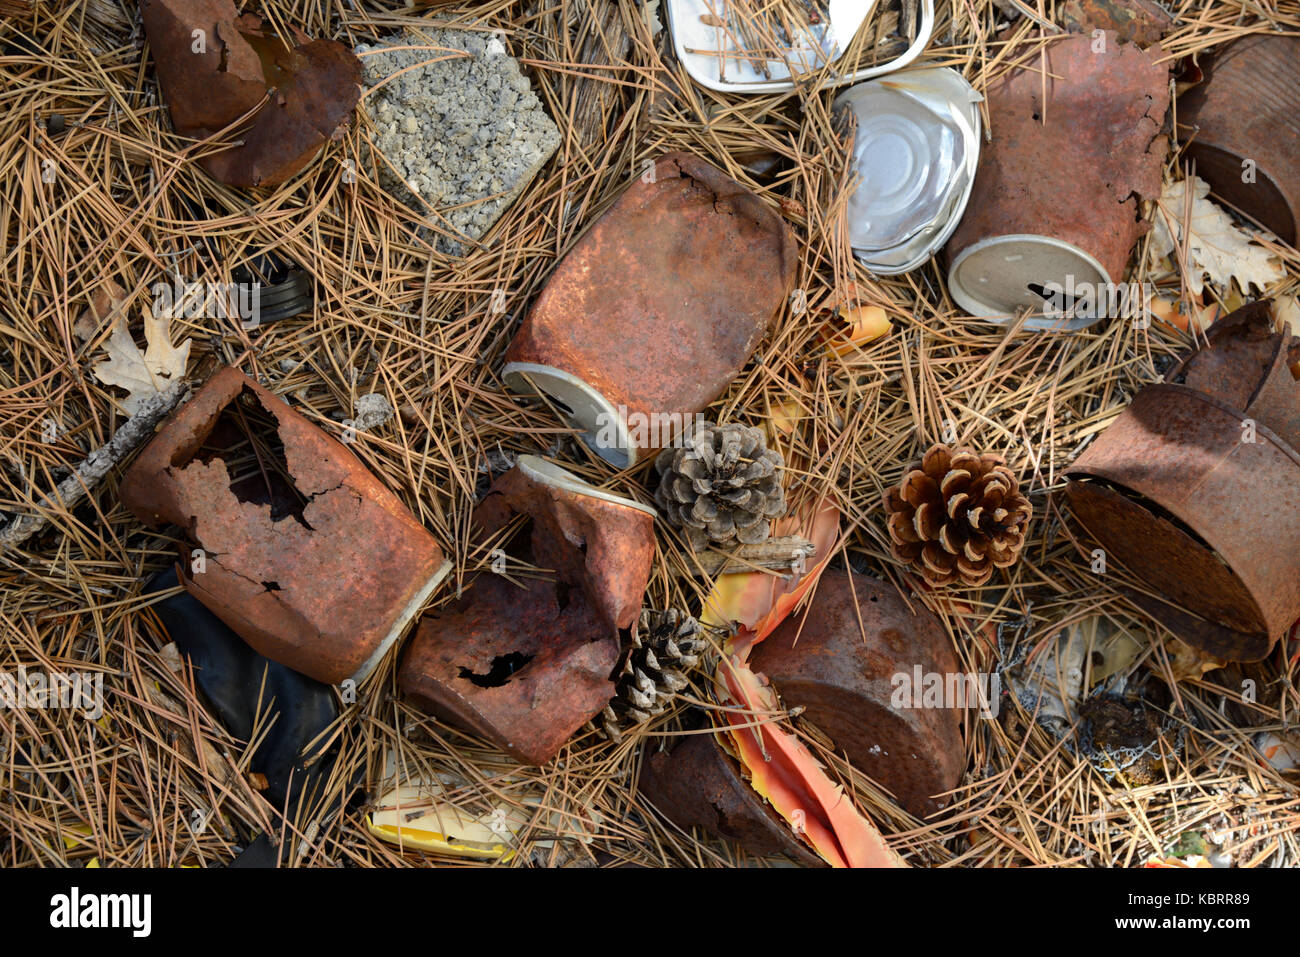 Rusty Old Tin Cans Scattered on Forest Floor - Stock Image